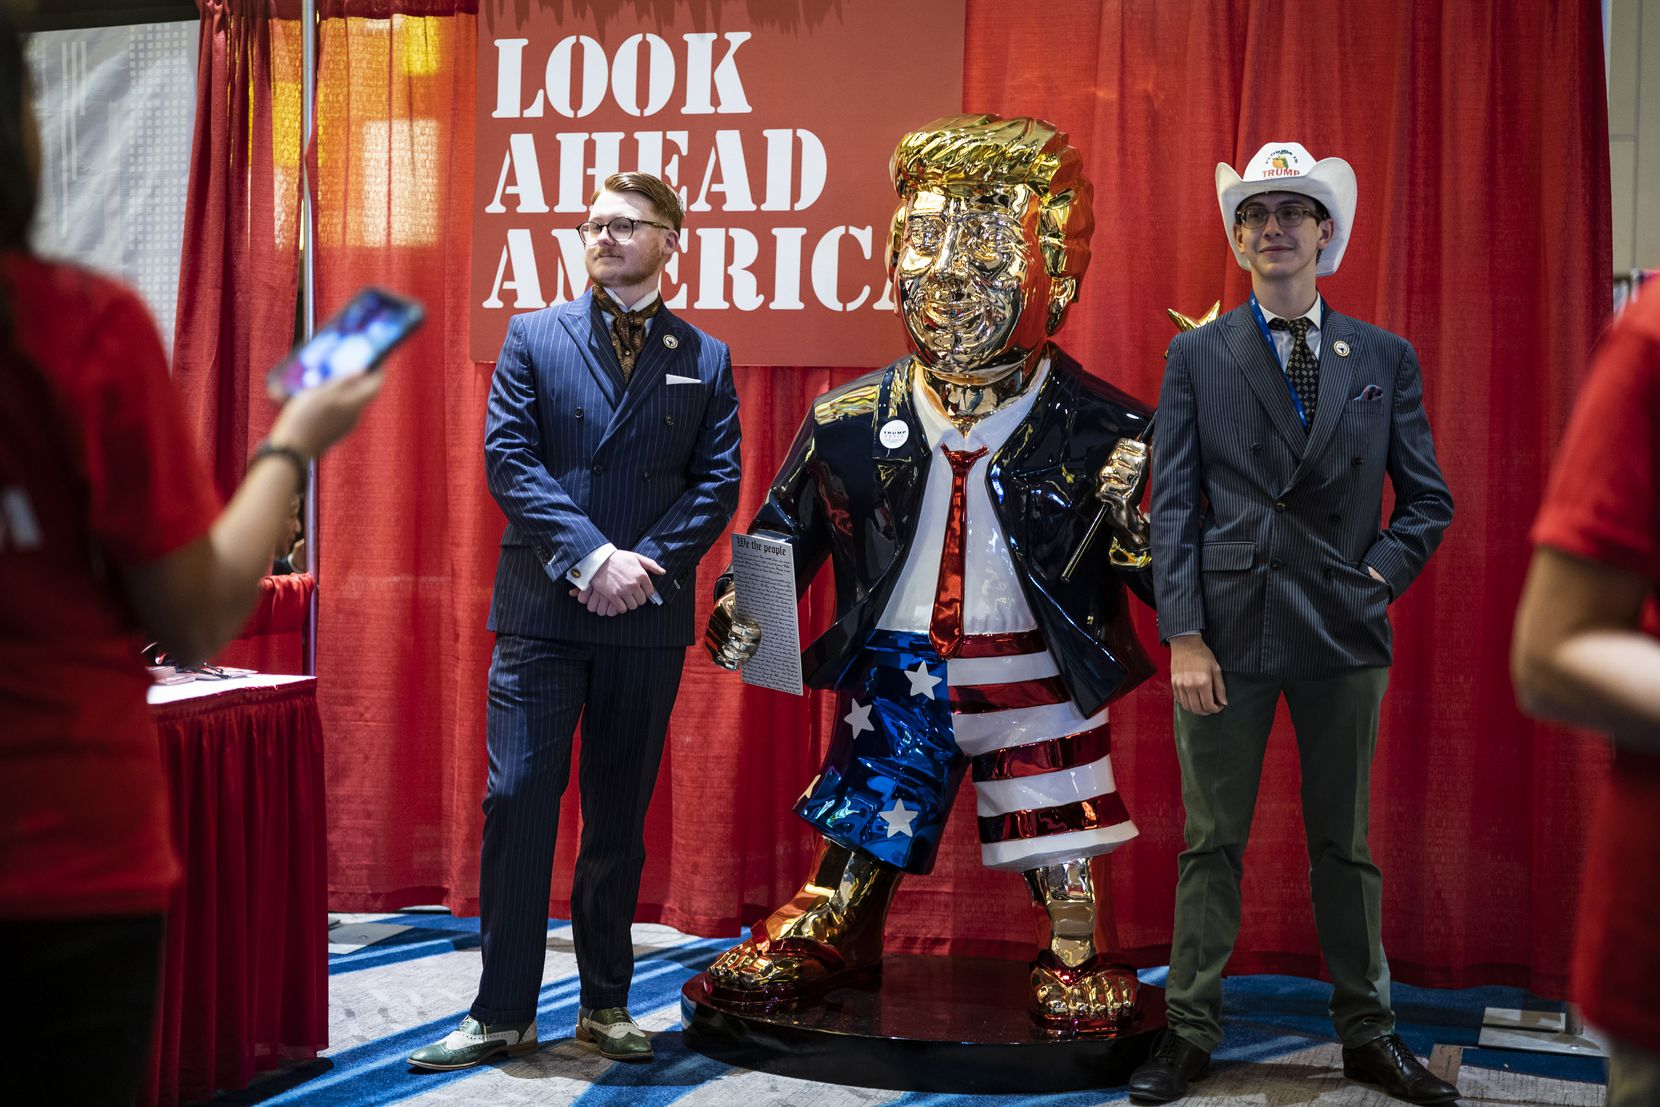 Attendees at the Conservative Political Action Conference in Orlando posed with a golden statue of former President Donald Trump on Feb. 26, 2021. (Jabin Botsford/The Washington Post)